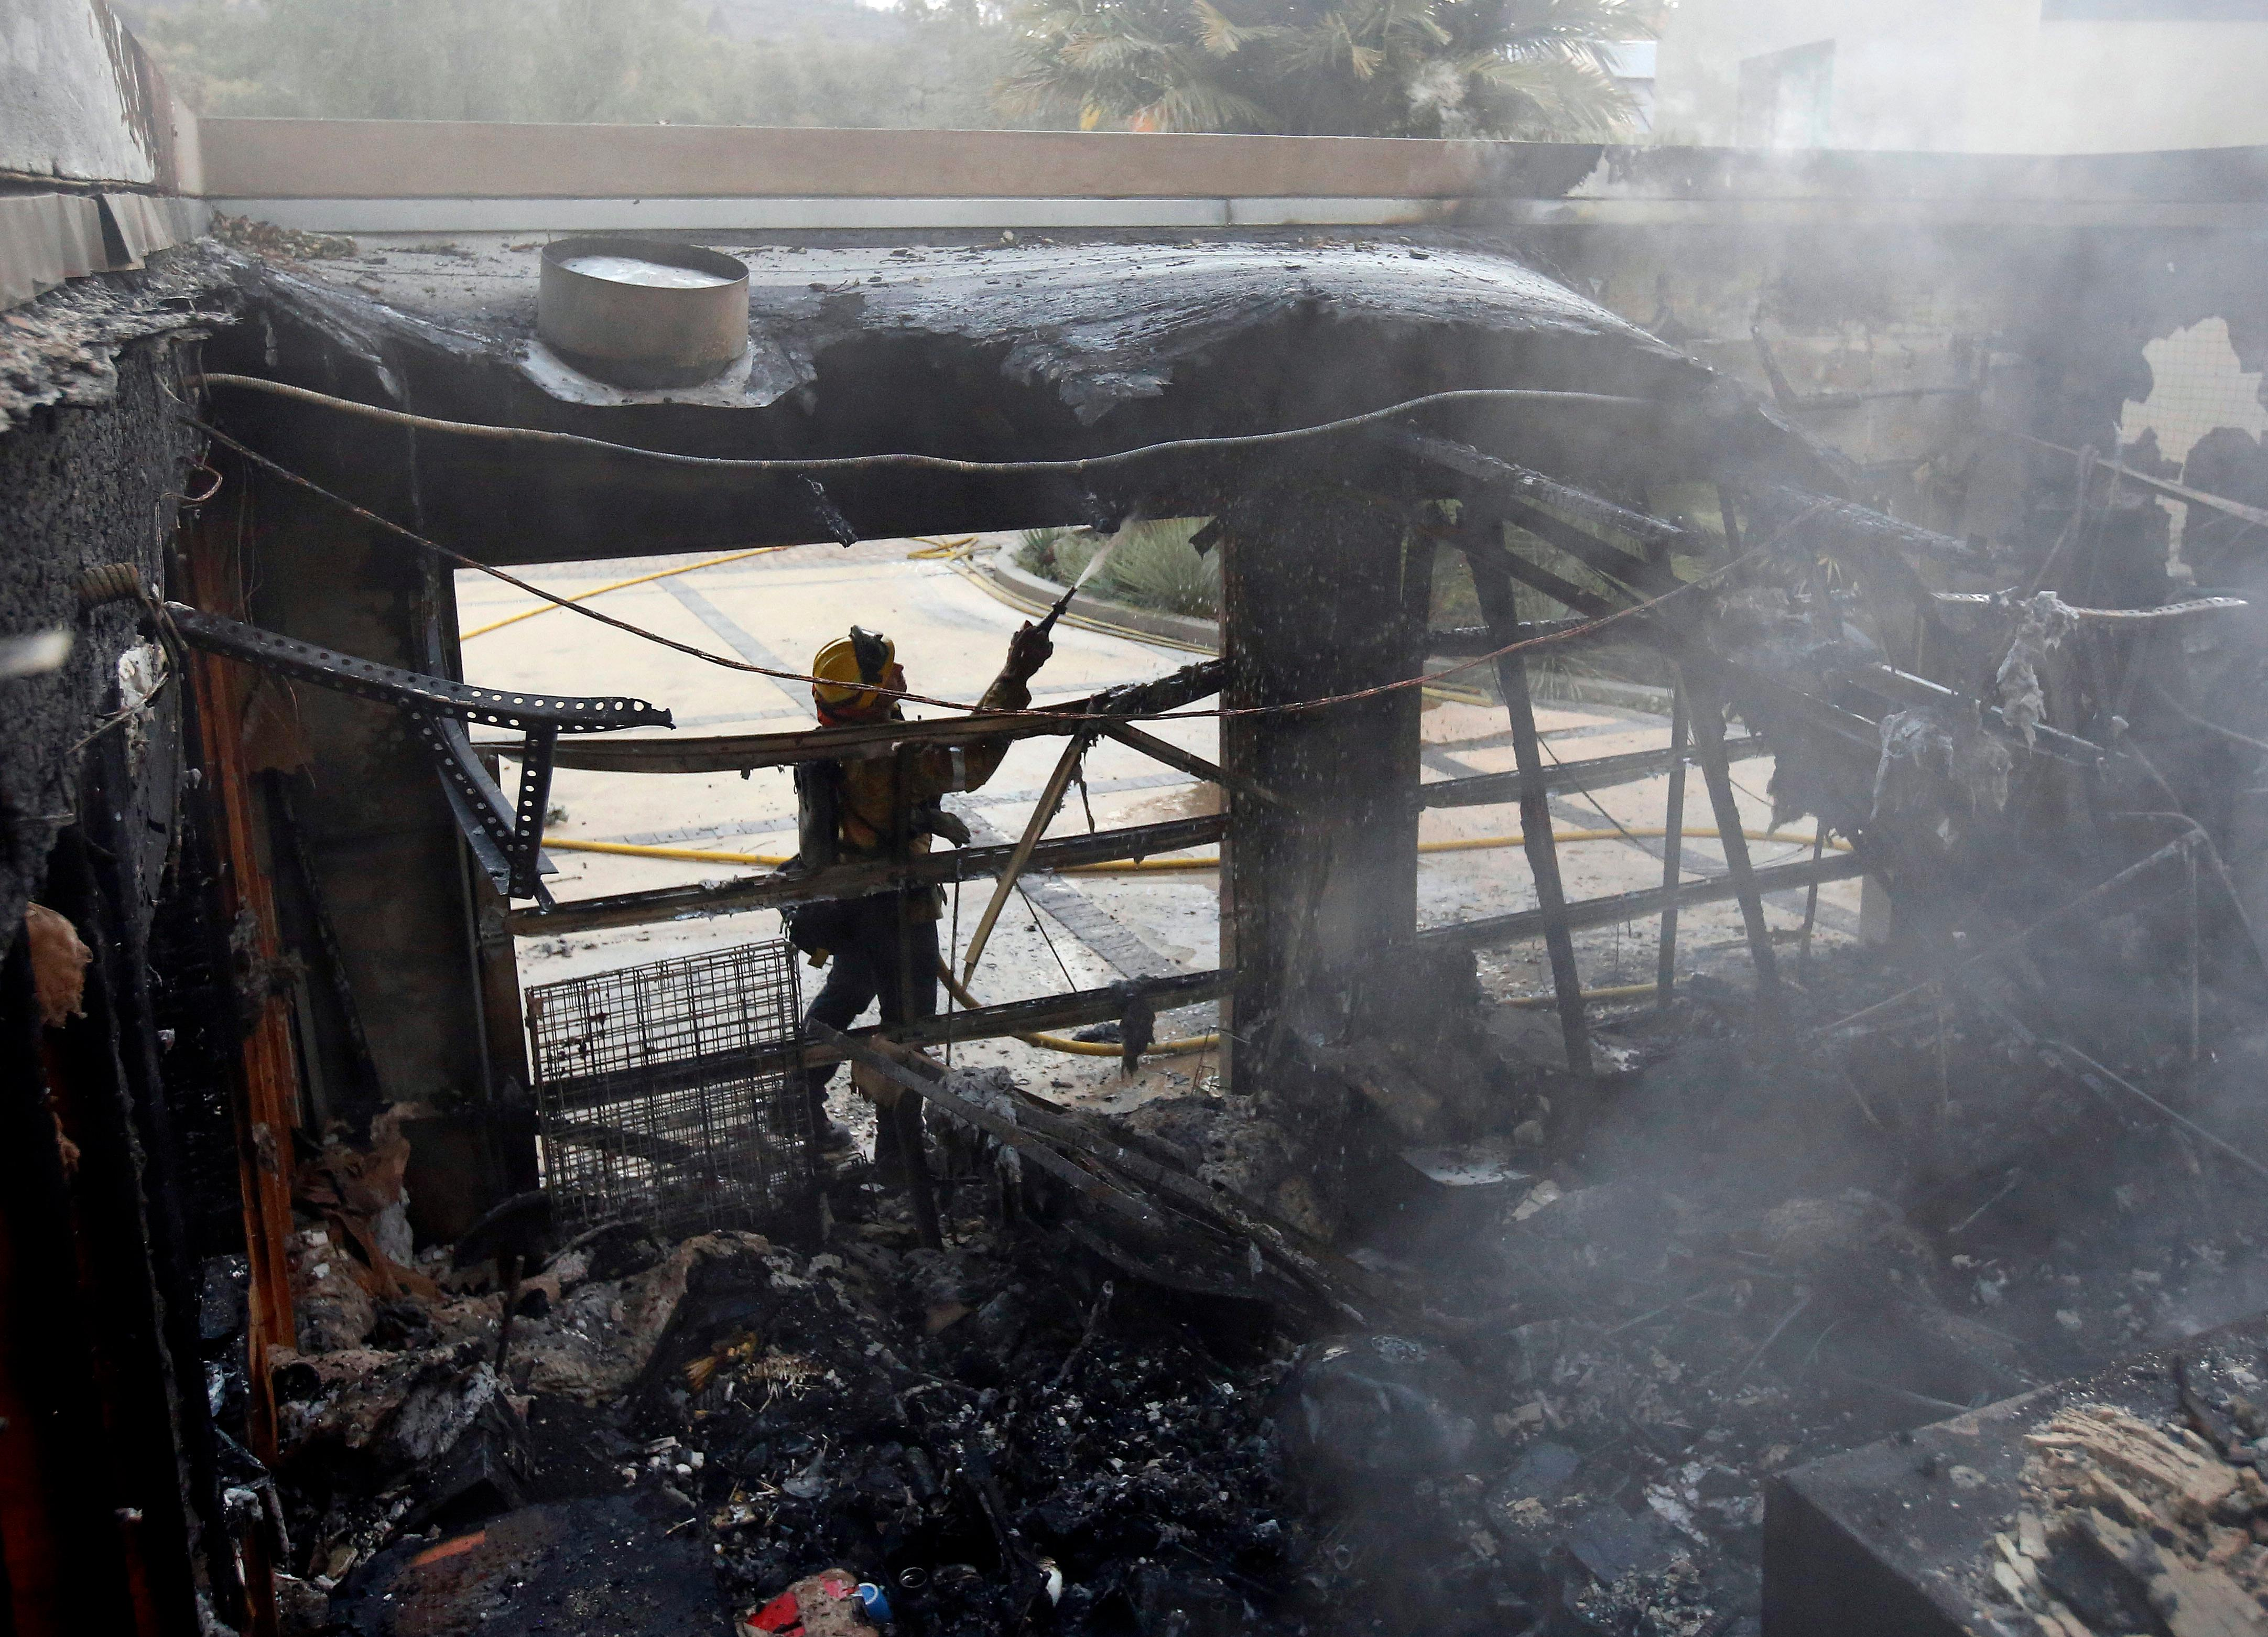 Firefighter Nick Gonzalez-Pomo, of the San Rafael Fire Department, waters down hot spots on a garage Tuesday, Oct. 10, 2017, in Napa, Calif. Wildfires whipped by powerful winds swept through the California wine country sending thousands fleeing as flames rages unchecked through high-end resorts, grocery stores and tree-lined neighborhoods.(AP Photo/Rich Pedroncelli)